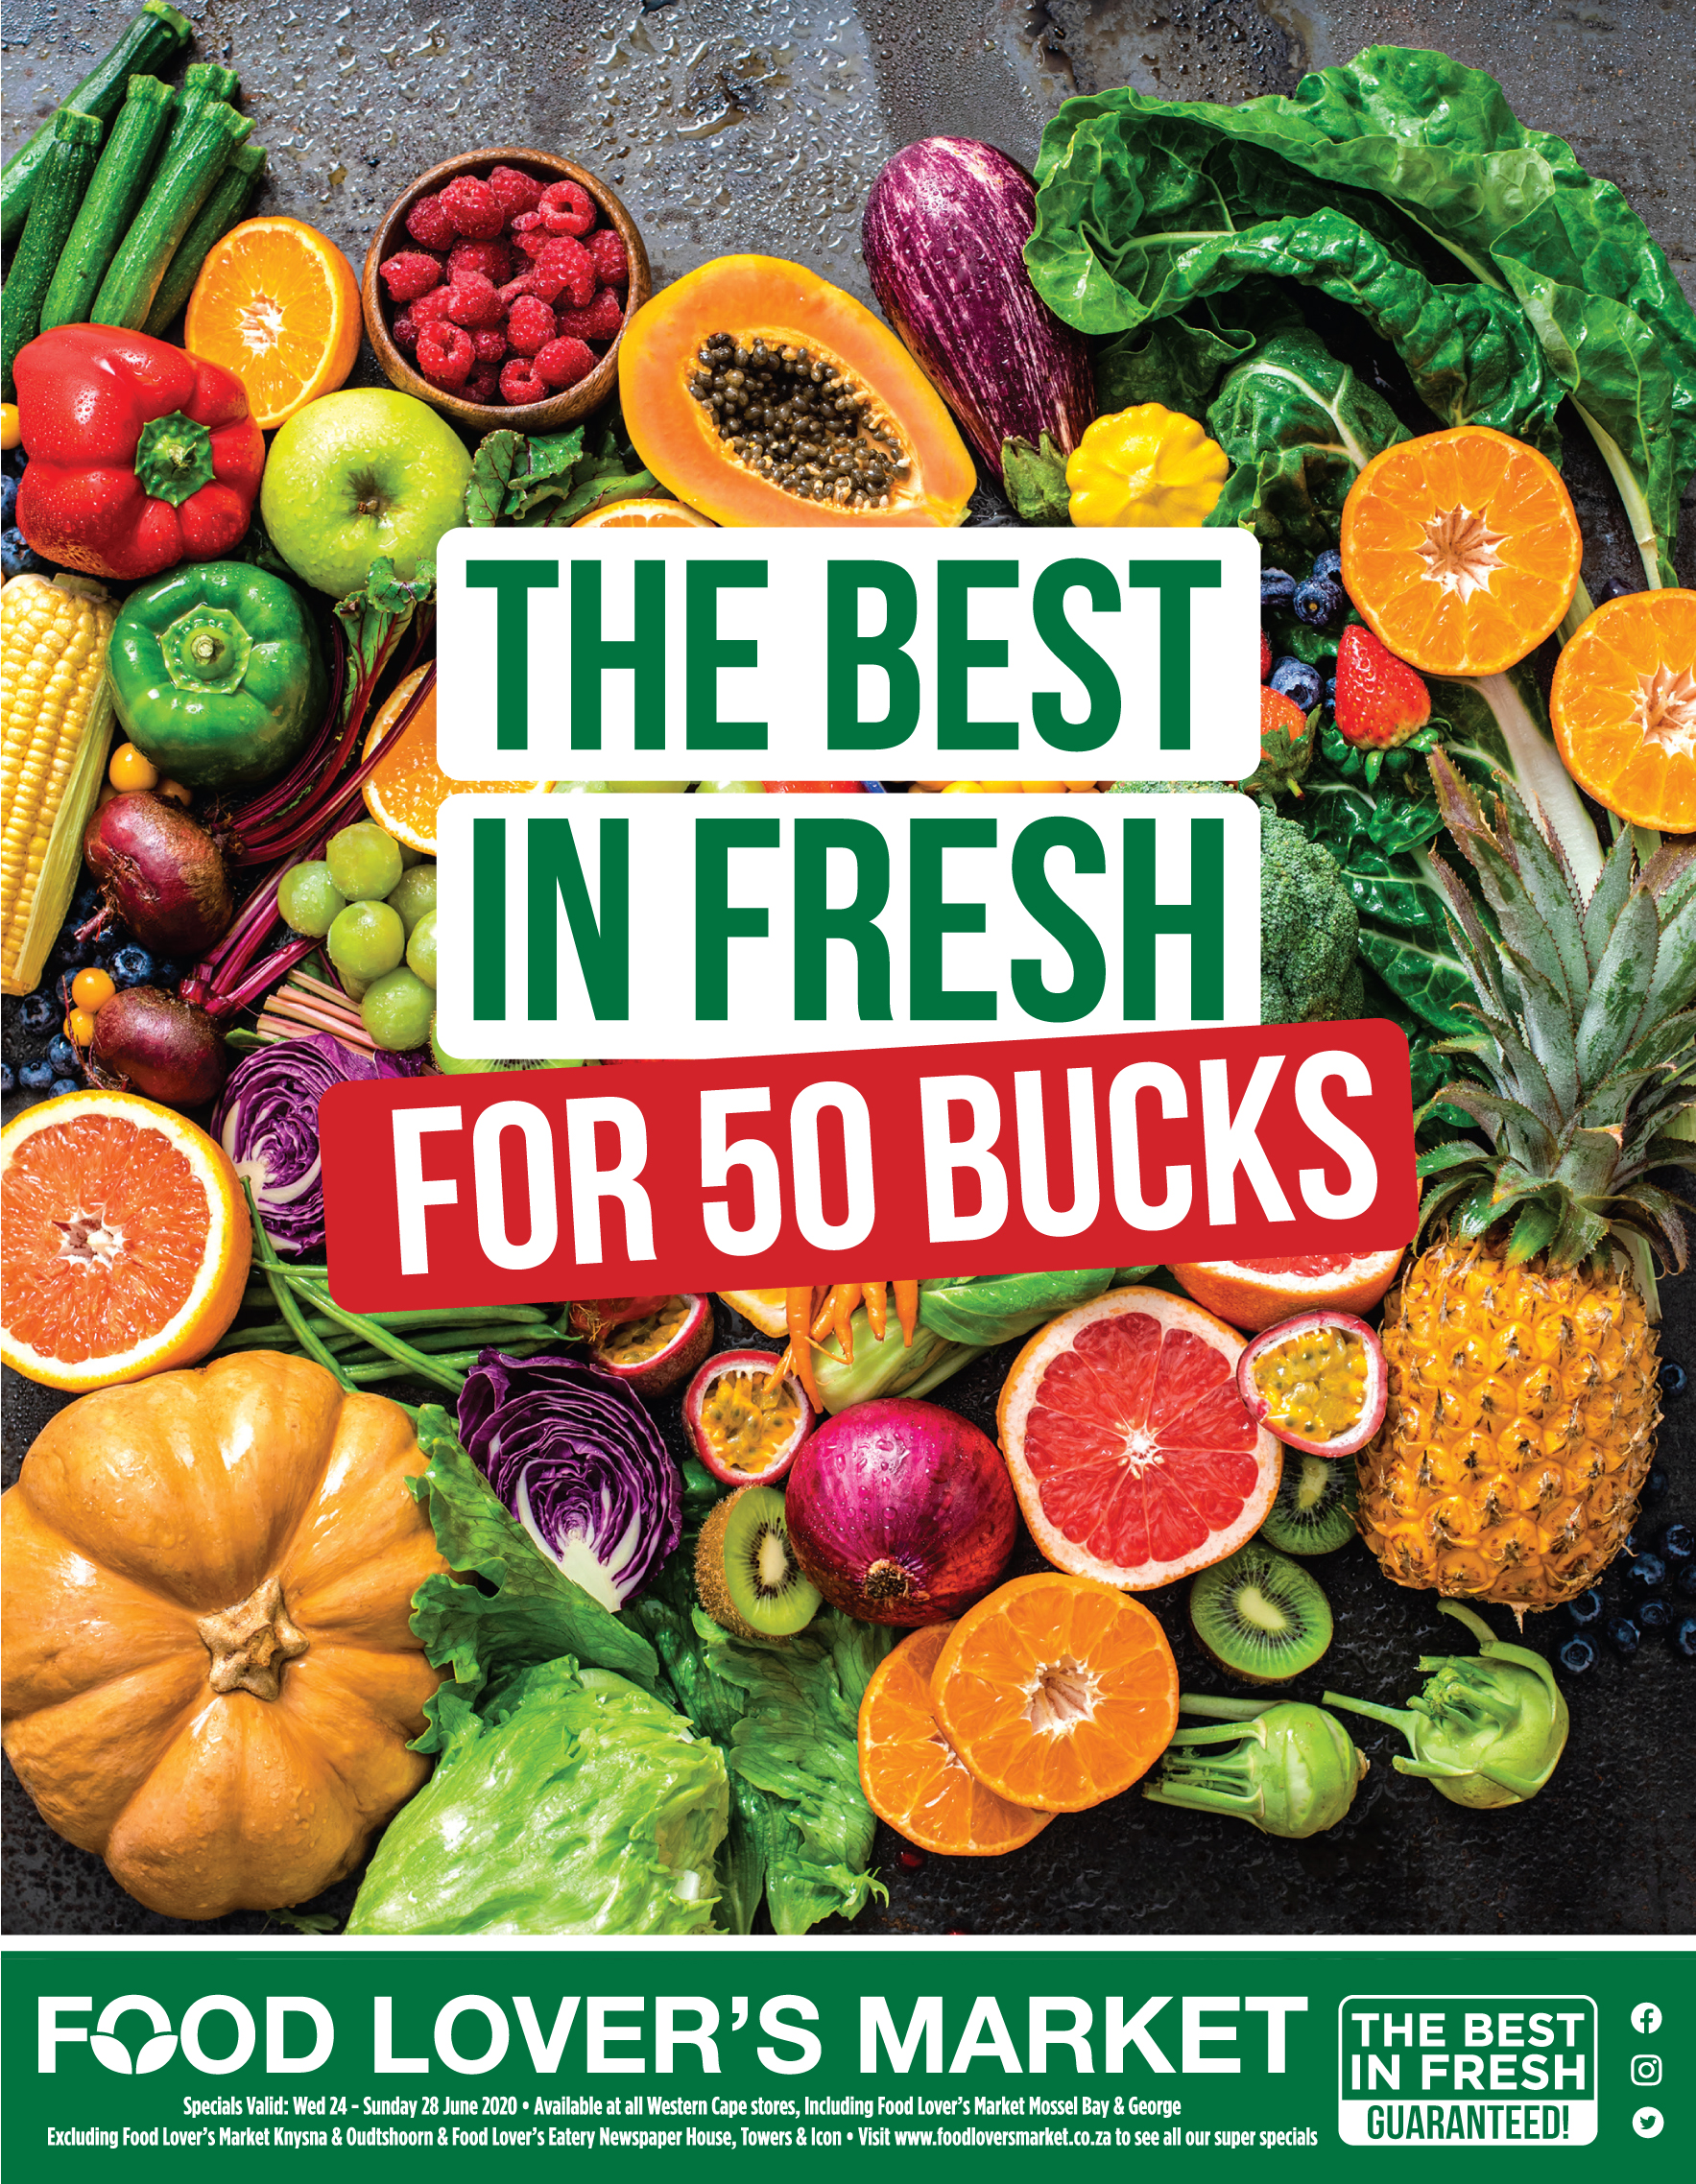 Food Lover's Market: 50 Buck Deals